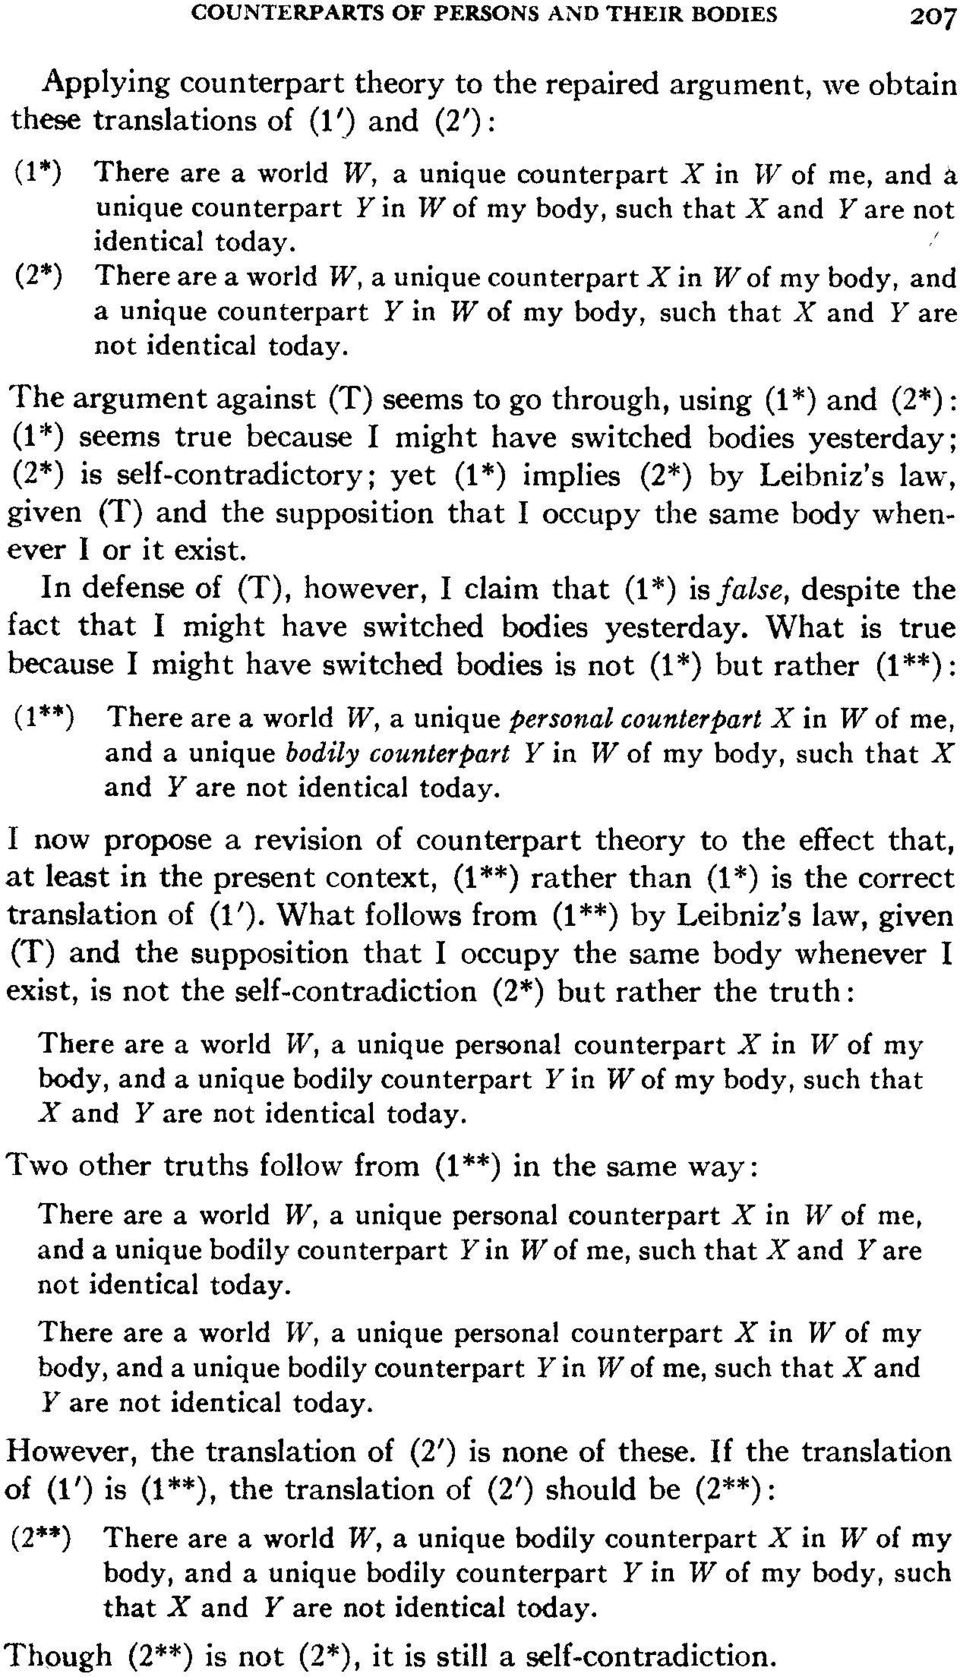 (2*) There are a world W, a unique counterpart X in W of my body, and a unique counterpart Y in W of my body, such that X and Y are not identical today.